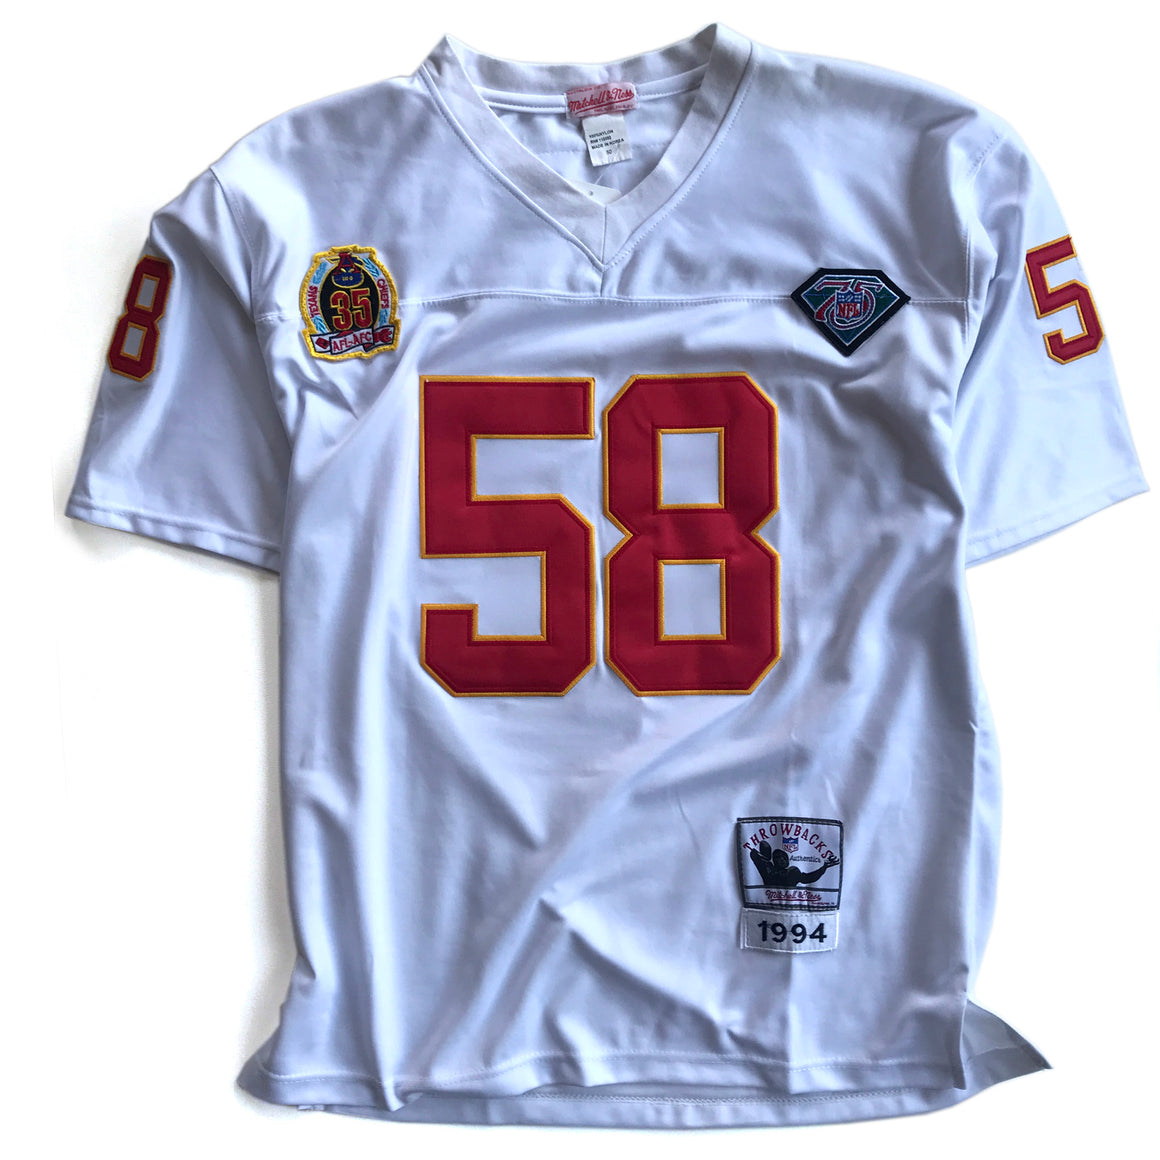 WESTSIDE STOREY VINTAGE | MITCHELL & NESS KC CHIEFS DERRICK THOMAS 75TH ANNIVERSARY WHITE JERSEY